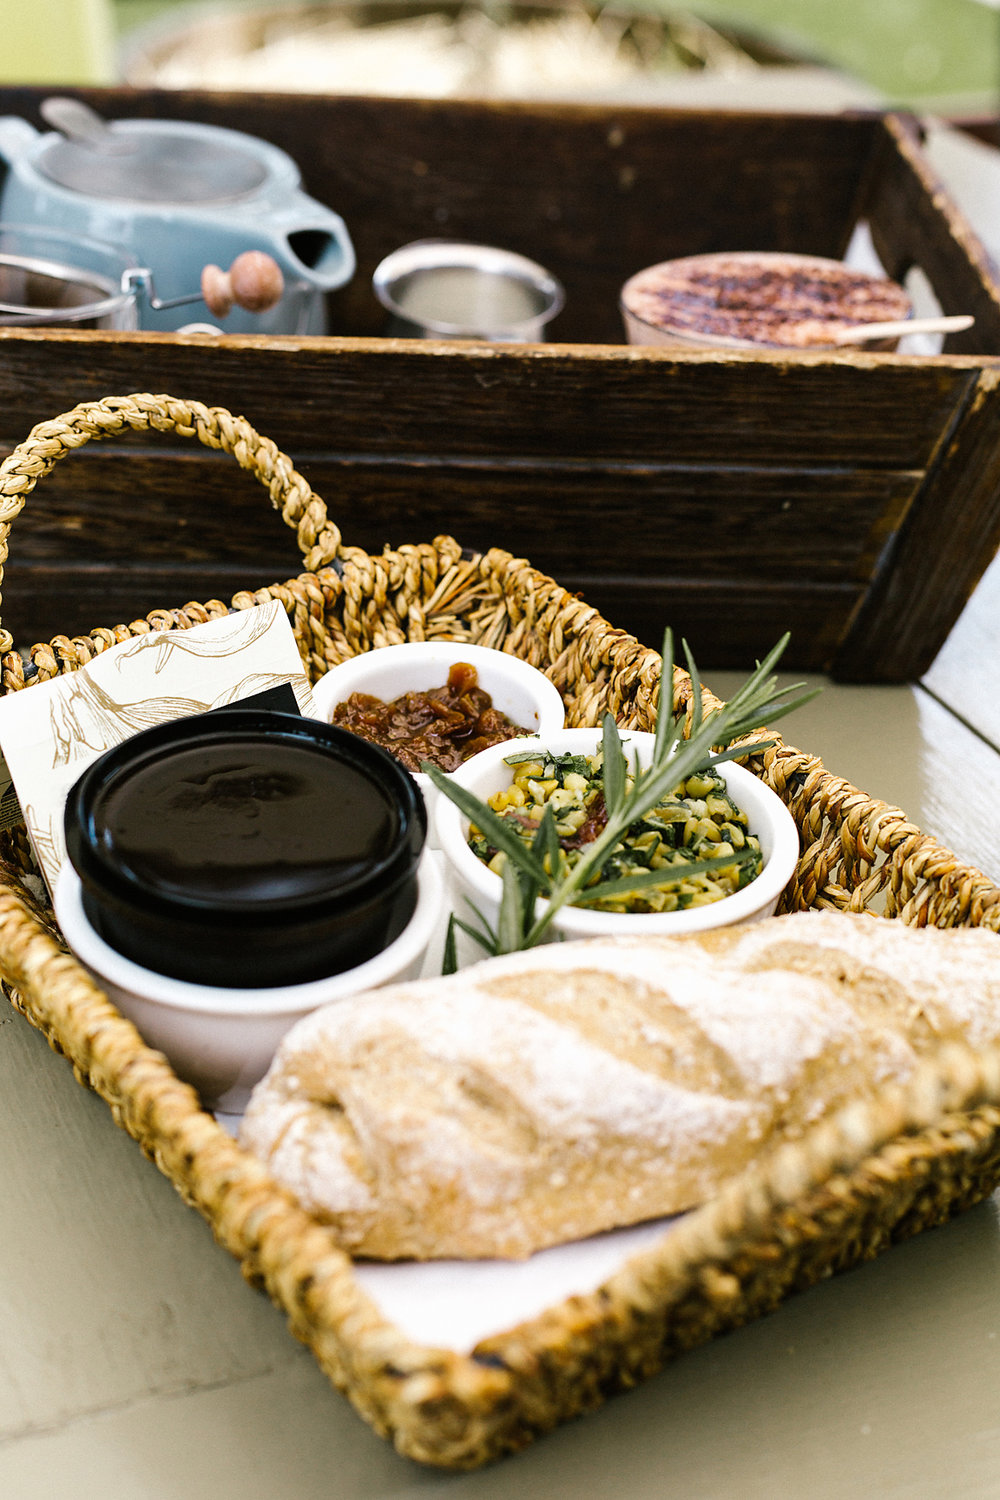 Pheasant Farm Chicken & Smoky Garlic Pate Picnic Basket